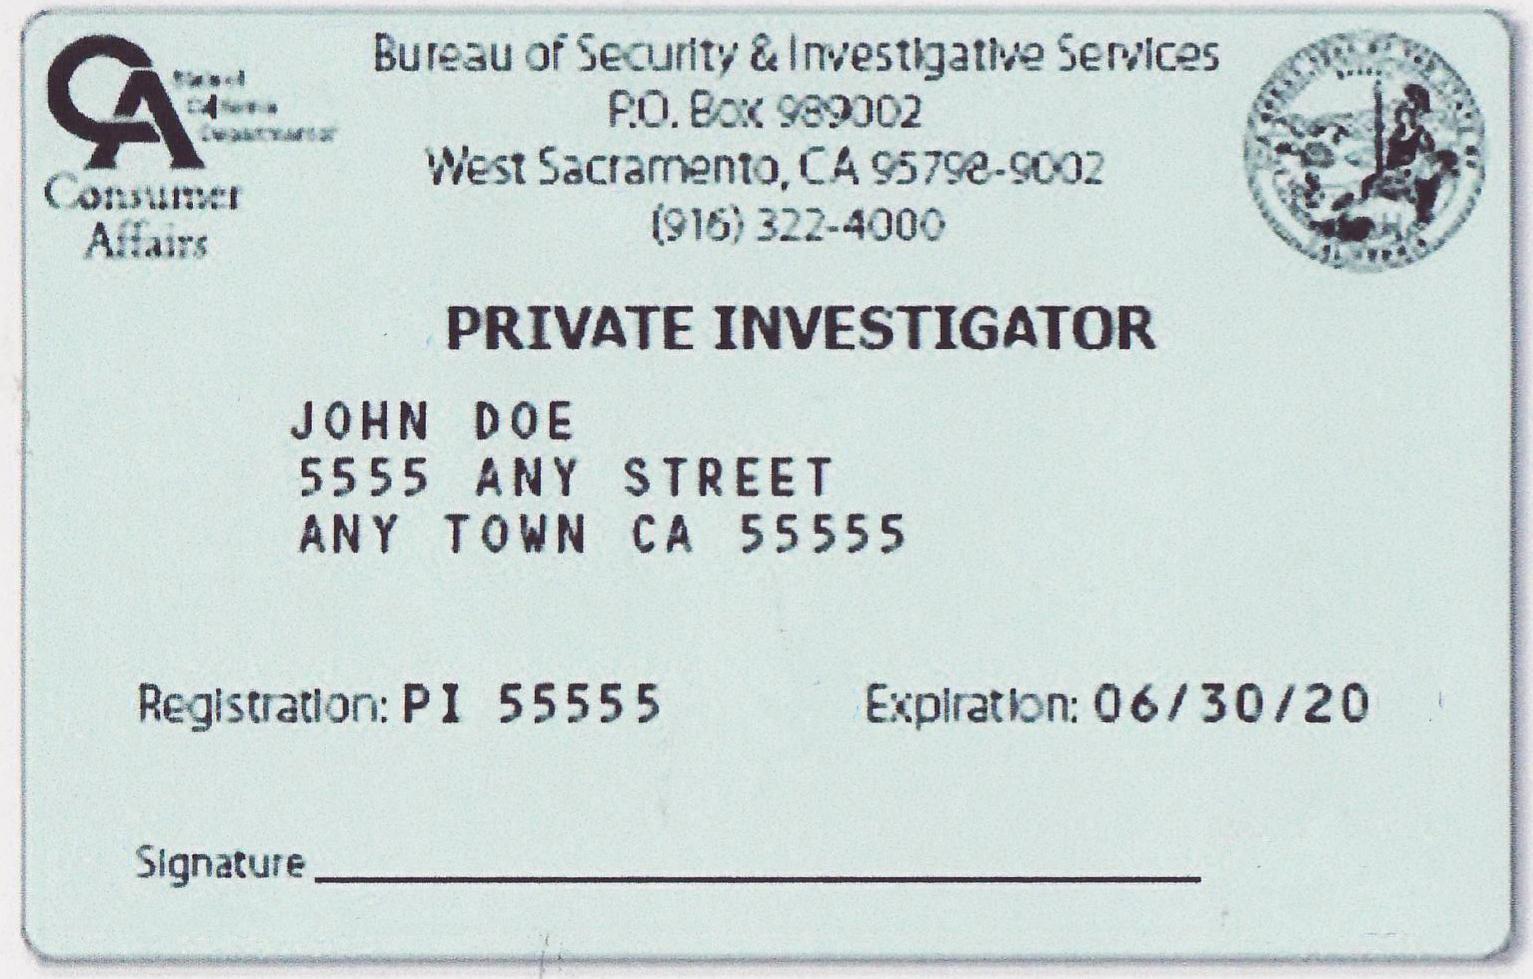 california PI license test at www.thePIgroup.com